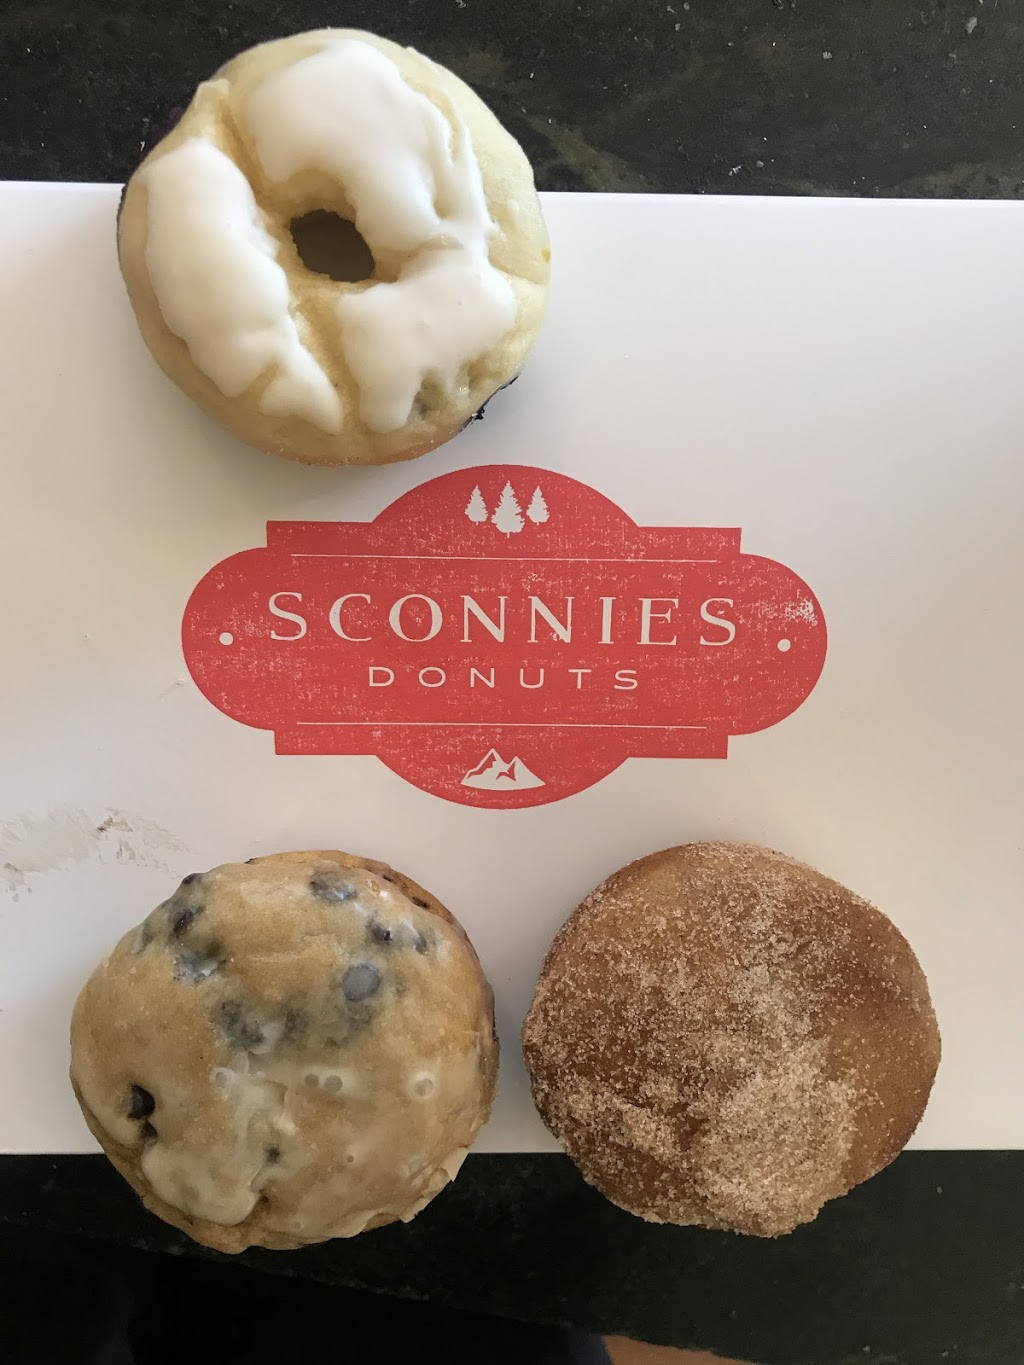 Sconnies Donuts - cafe  | Photo 1 of 2 | Address: 32156 Castle Ct Suite 105, Evergreen, CO 80439, USA | Phone: (303) 484-9066